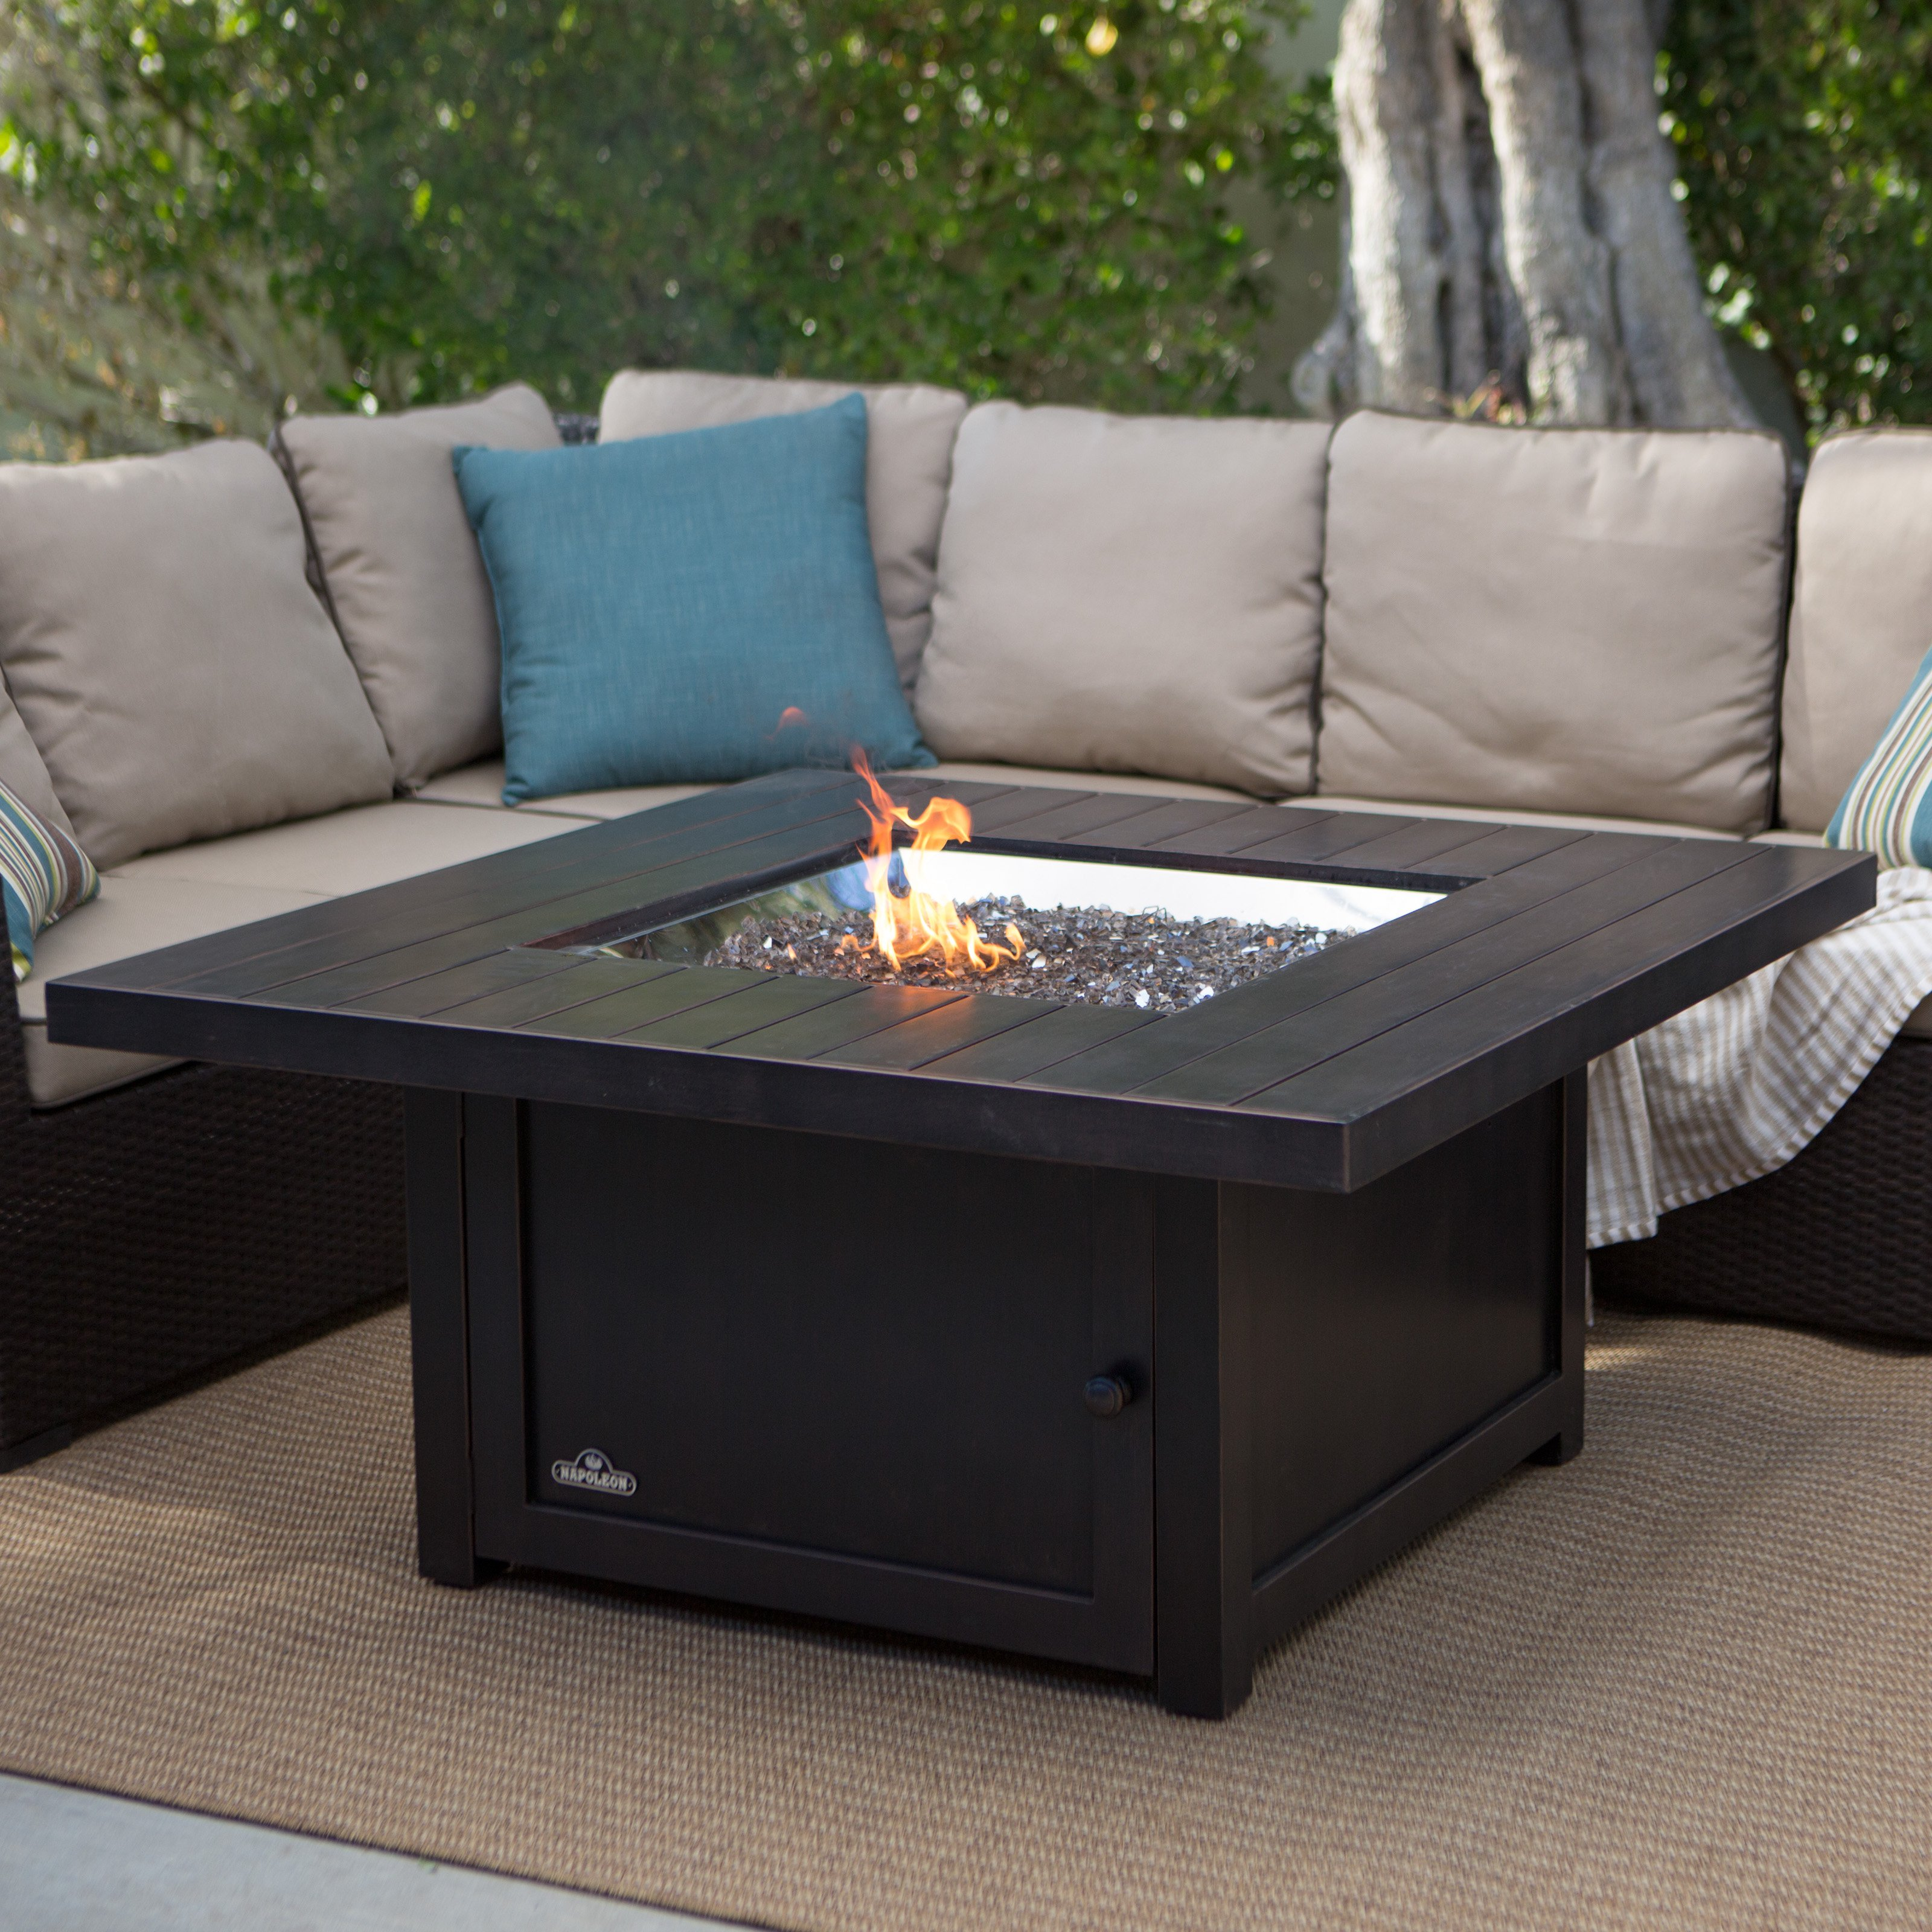 Propane fire pit on wood deck - Fire Pit Table And Chair Set Fire Pit Coffee Table Combo Portable